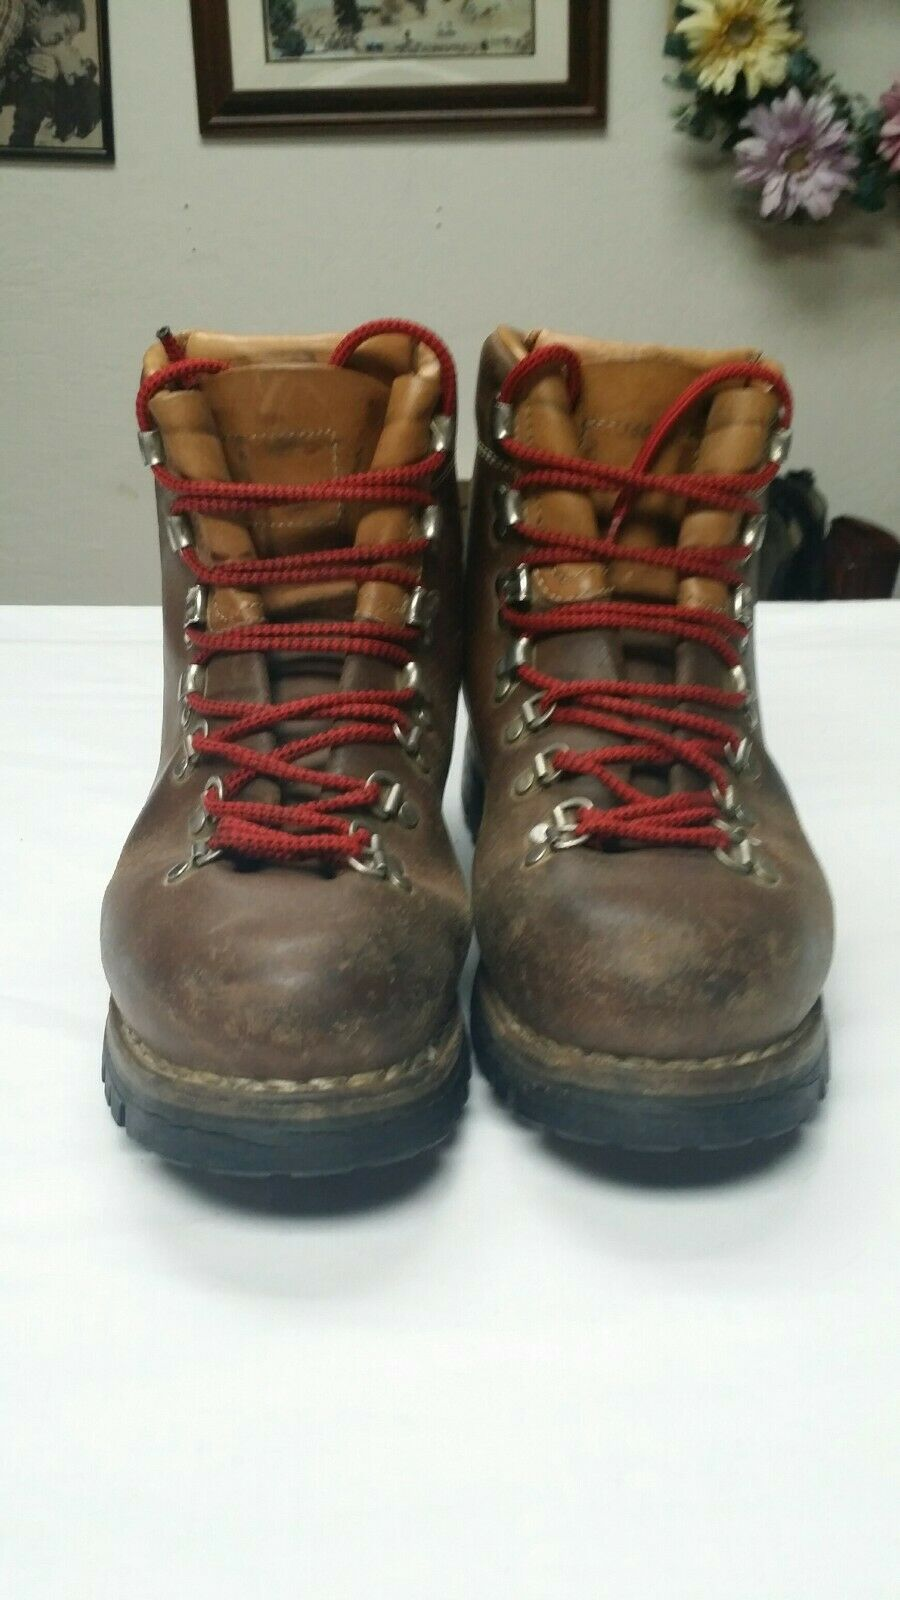 VASQUE CLASSIC NORWEGIAN WELT HIKING Stiefel QUALITY LEATHER THROUGHOUT